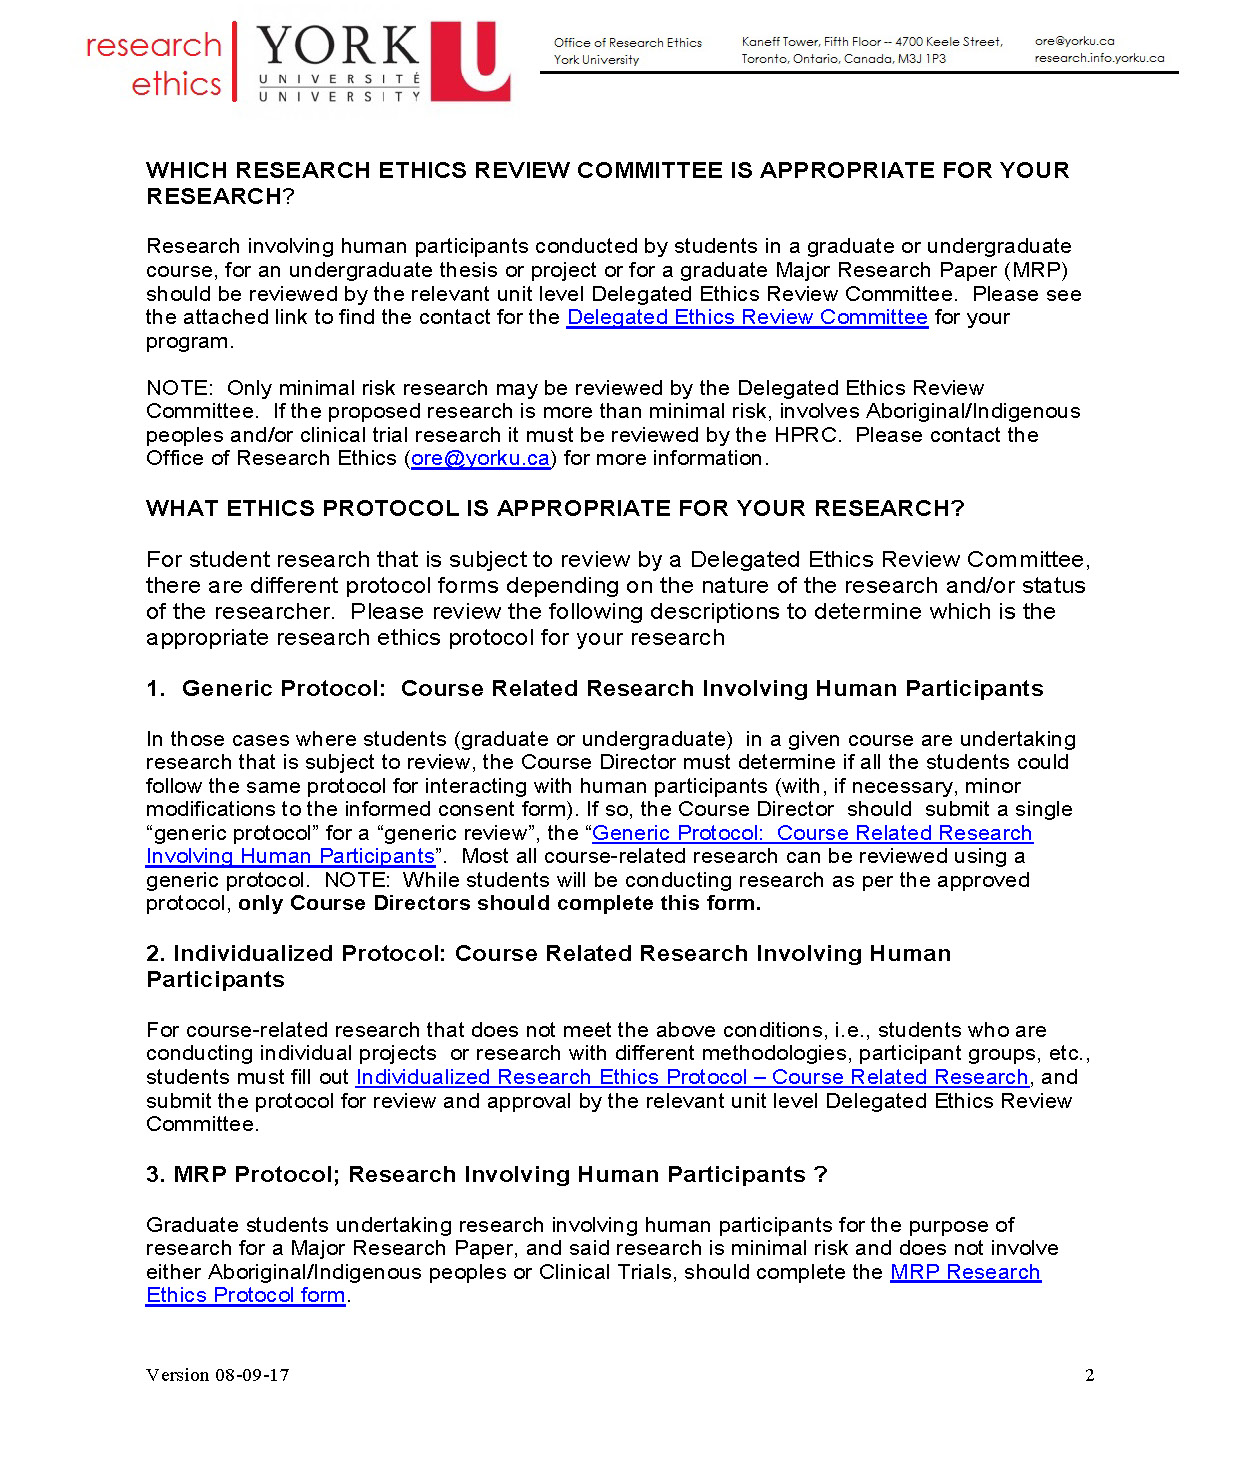 full-size image of the ethics review requirements for course related reserach page 2